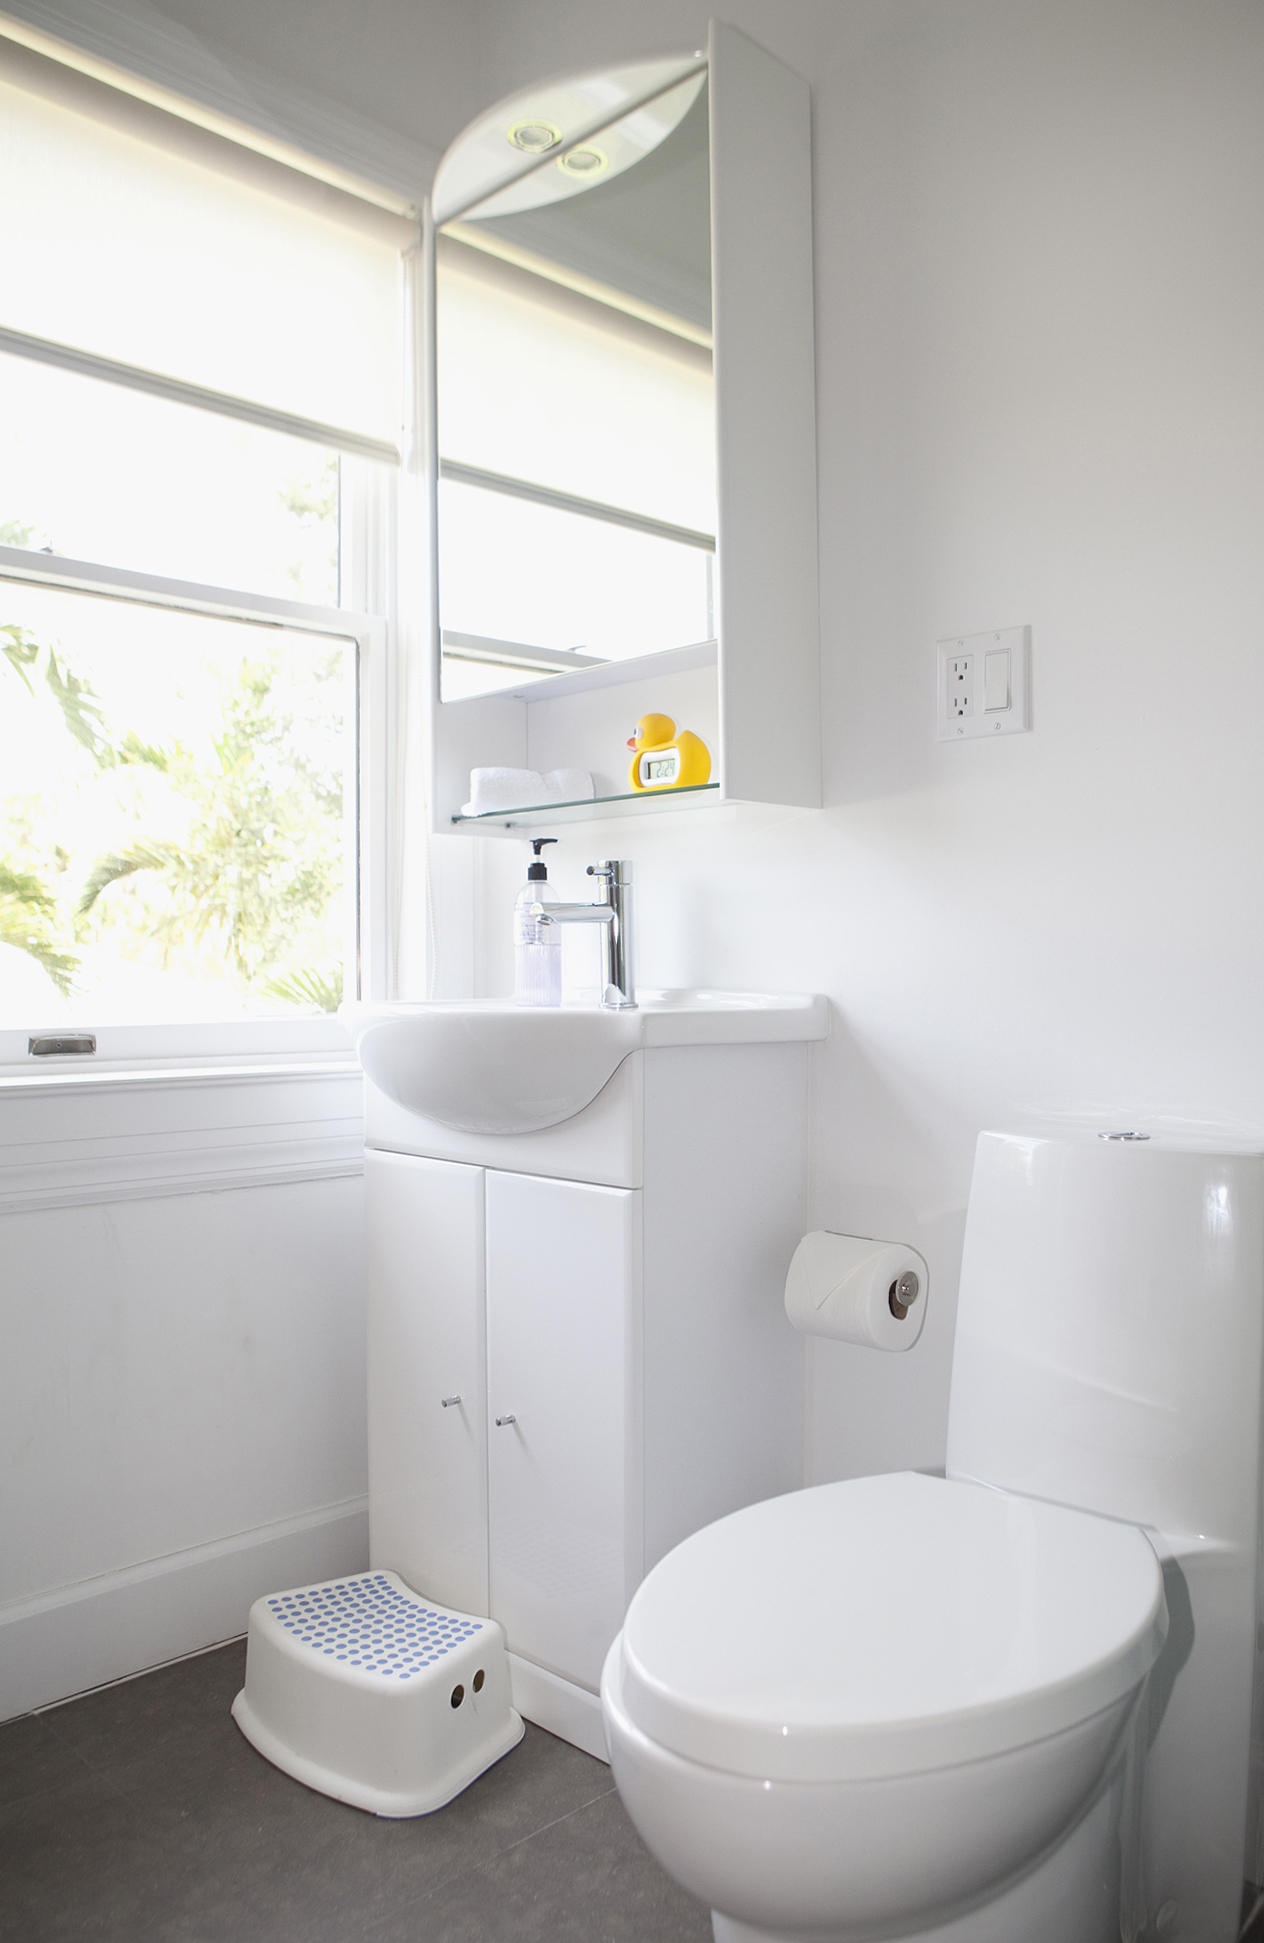 White bathroom sink and medicine cabinet